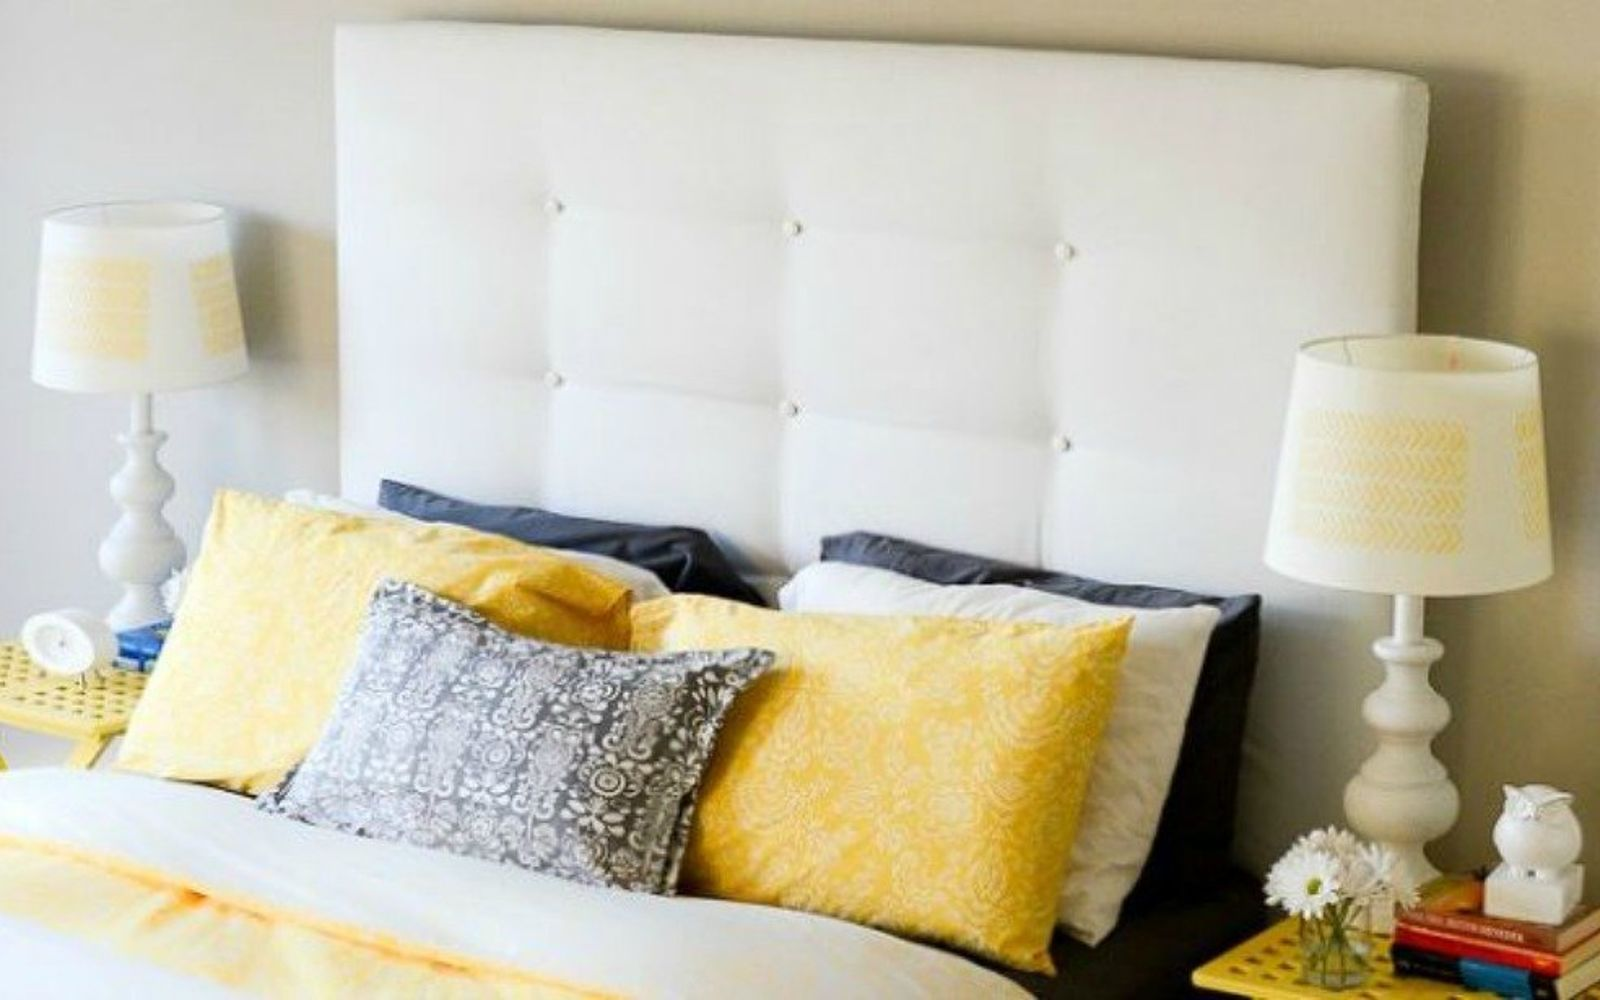 s these are the diy headboard ideas you ve been dreaming of, This darling ikea hack headboard